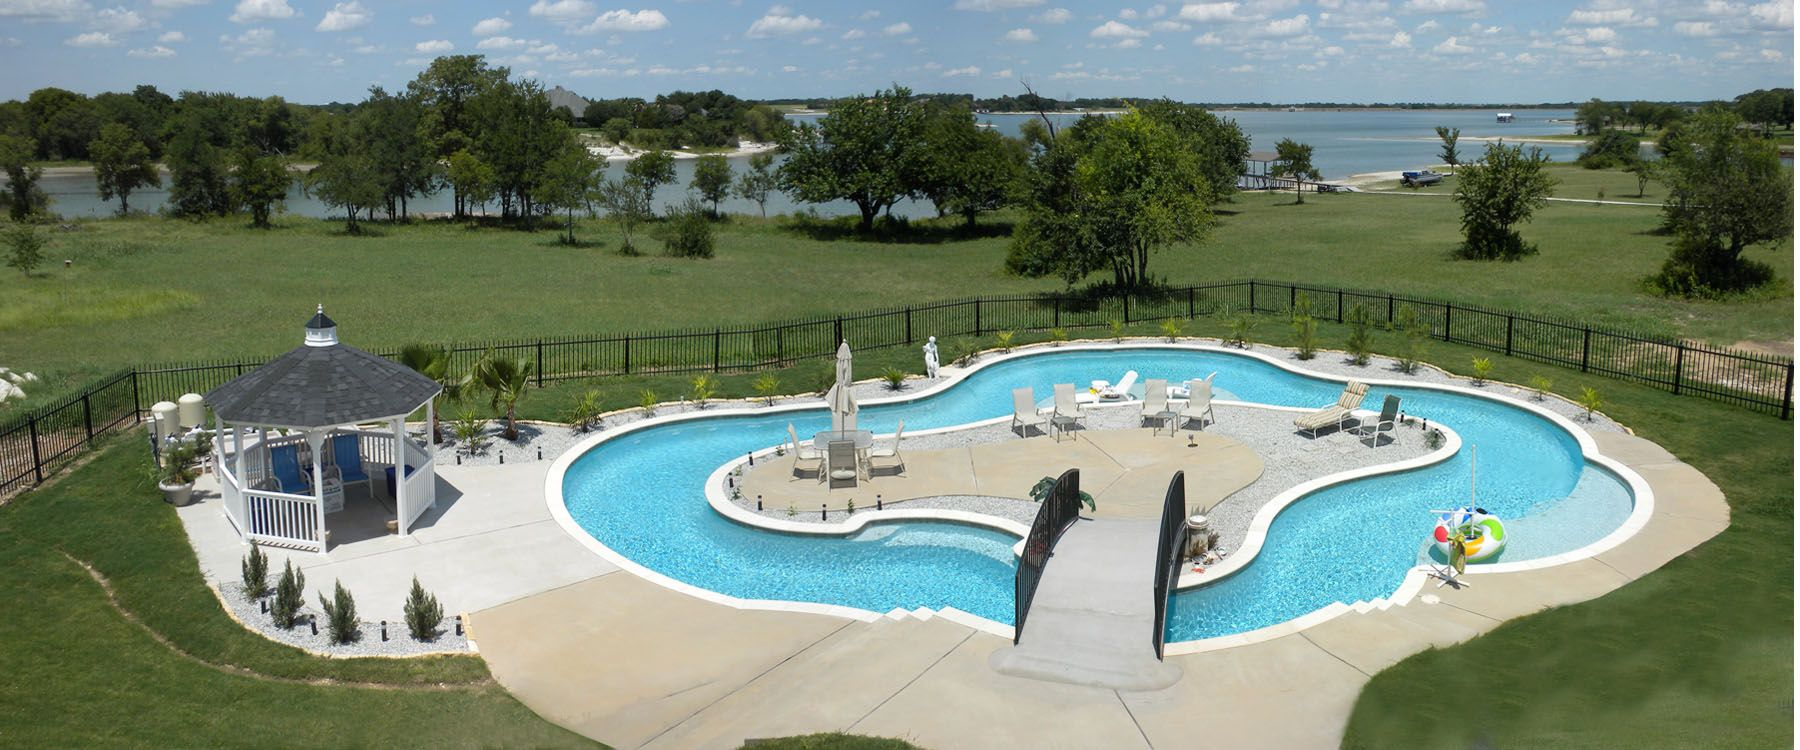 Residential lazy river pool light commercial luxury for Backyard pool planner